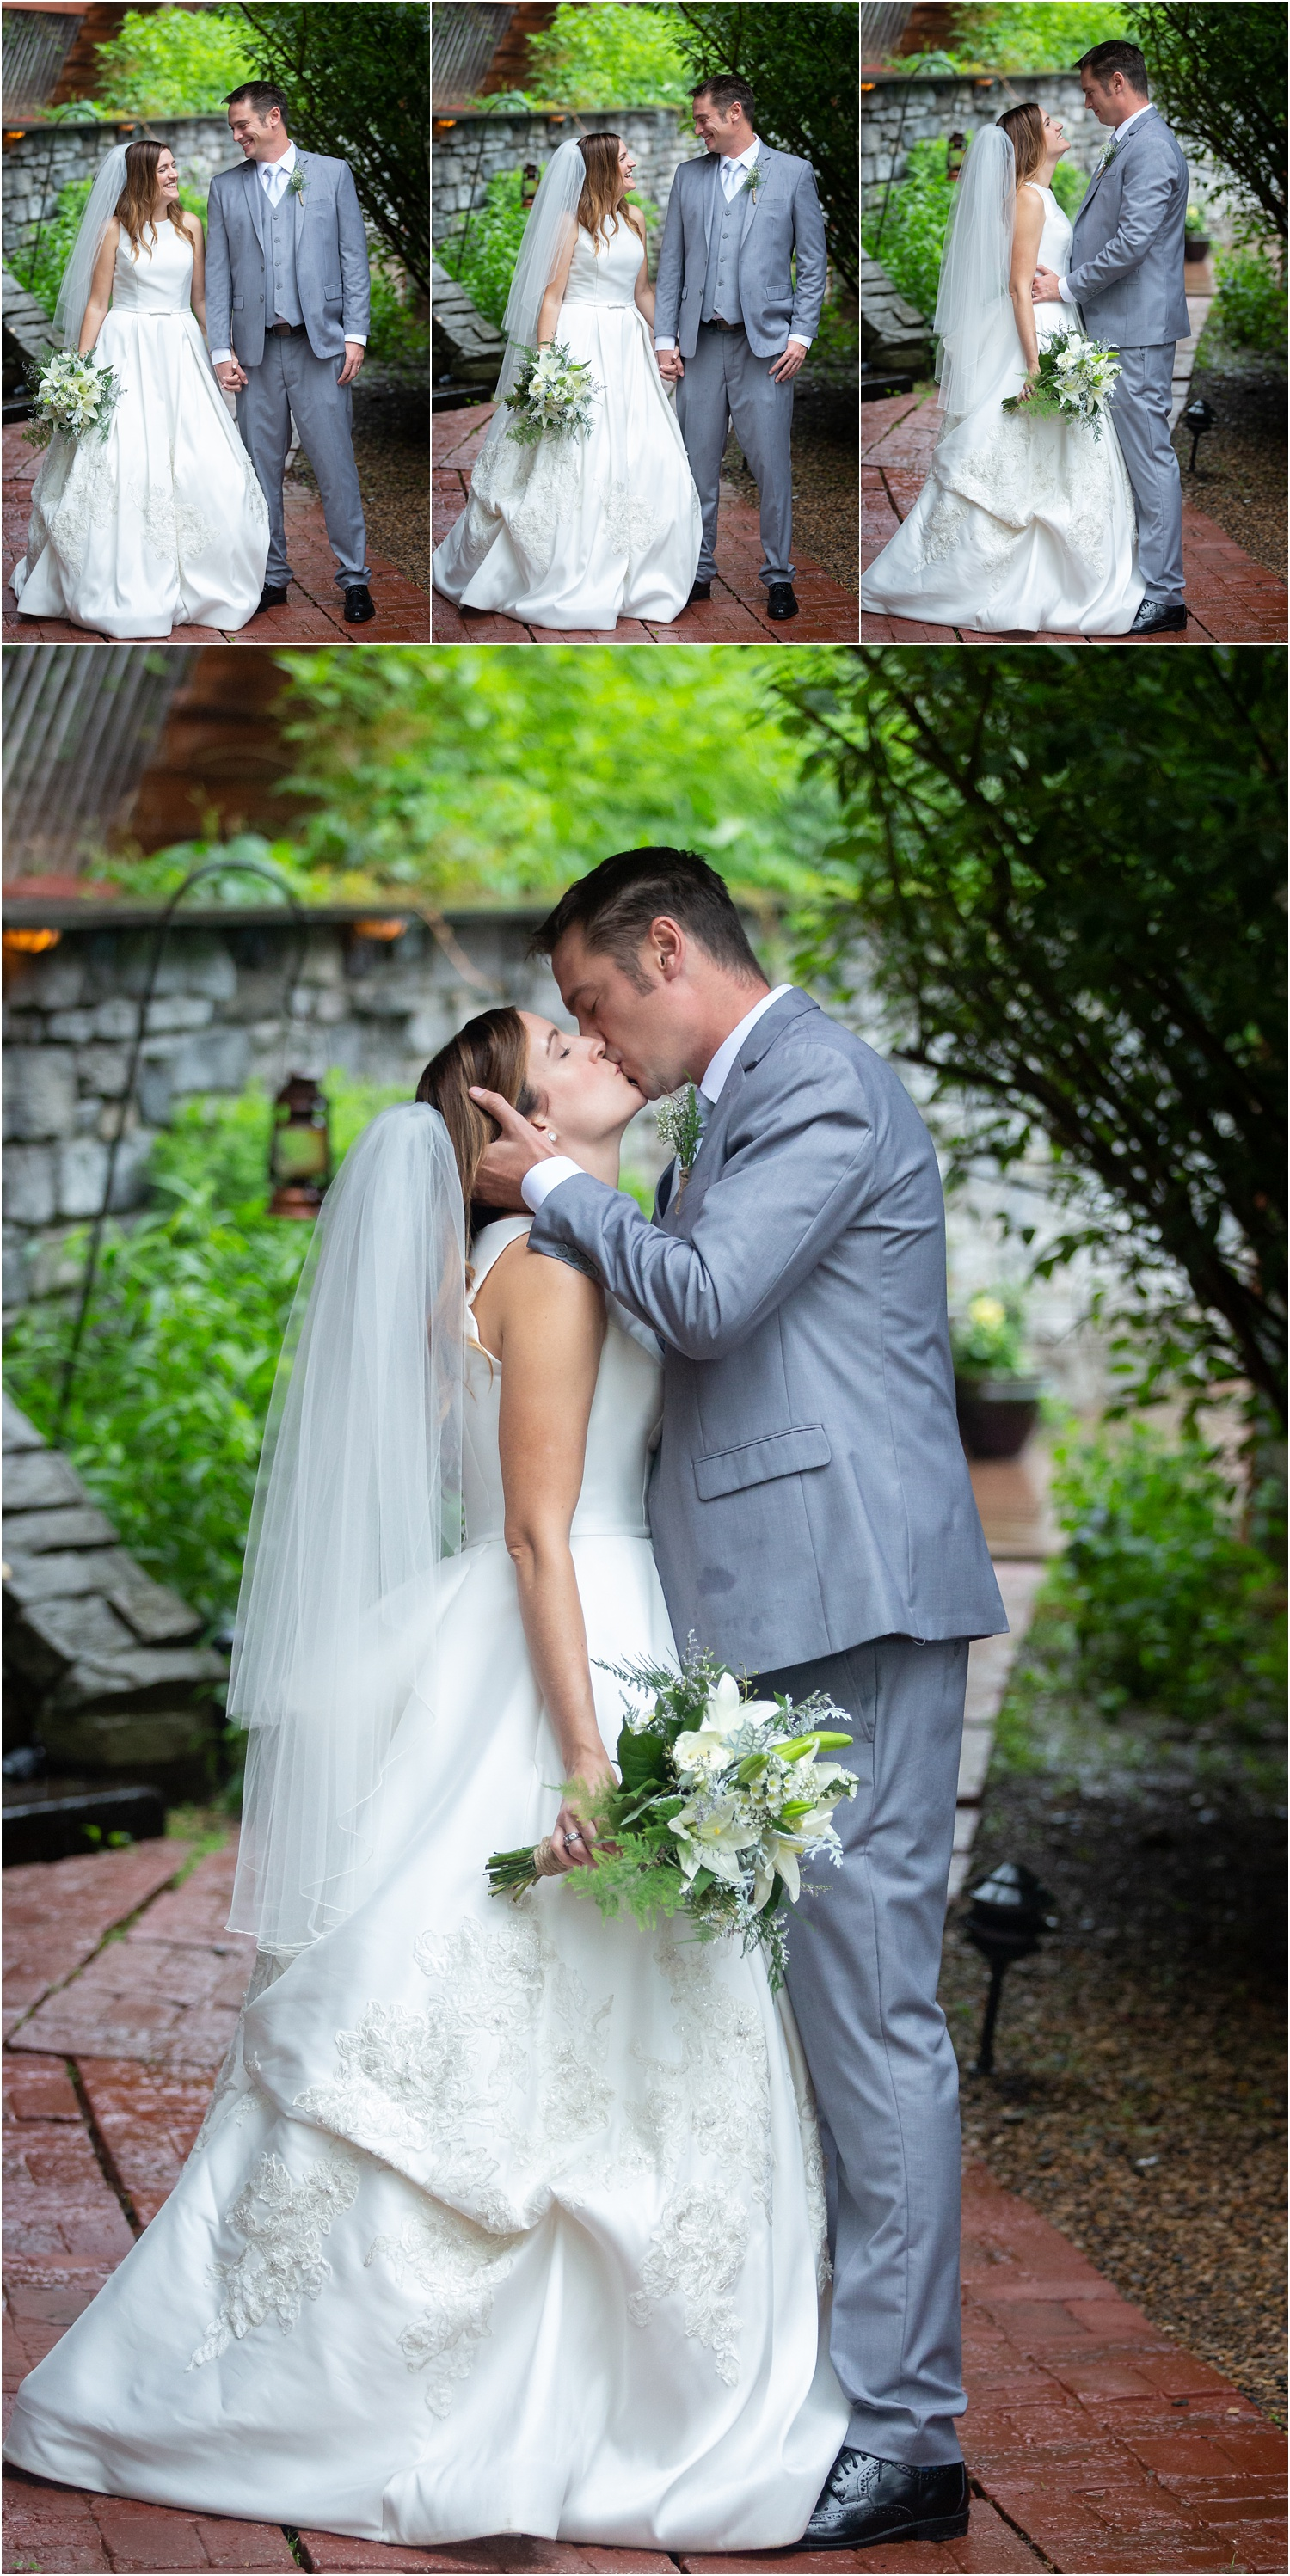 carrieandjeremy_maryngravesproduction_wvweddings_0514.jpg